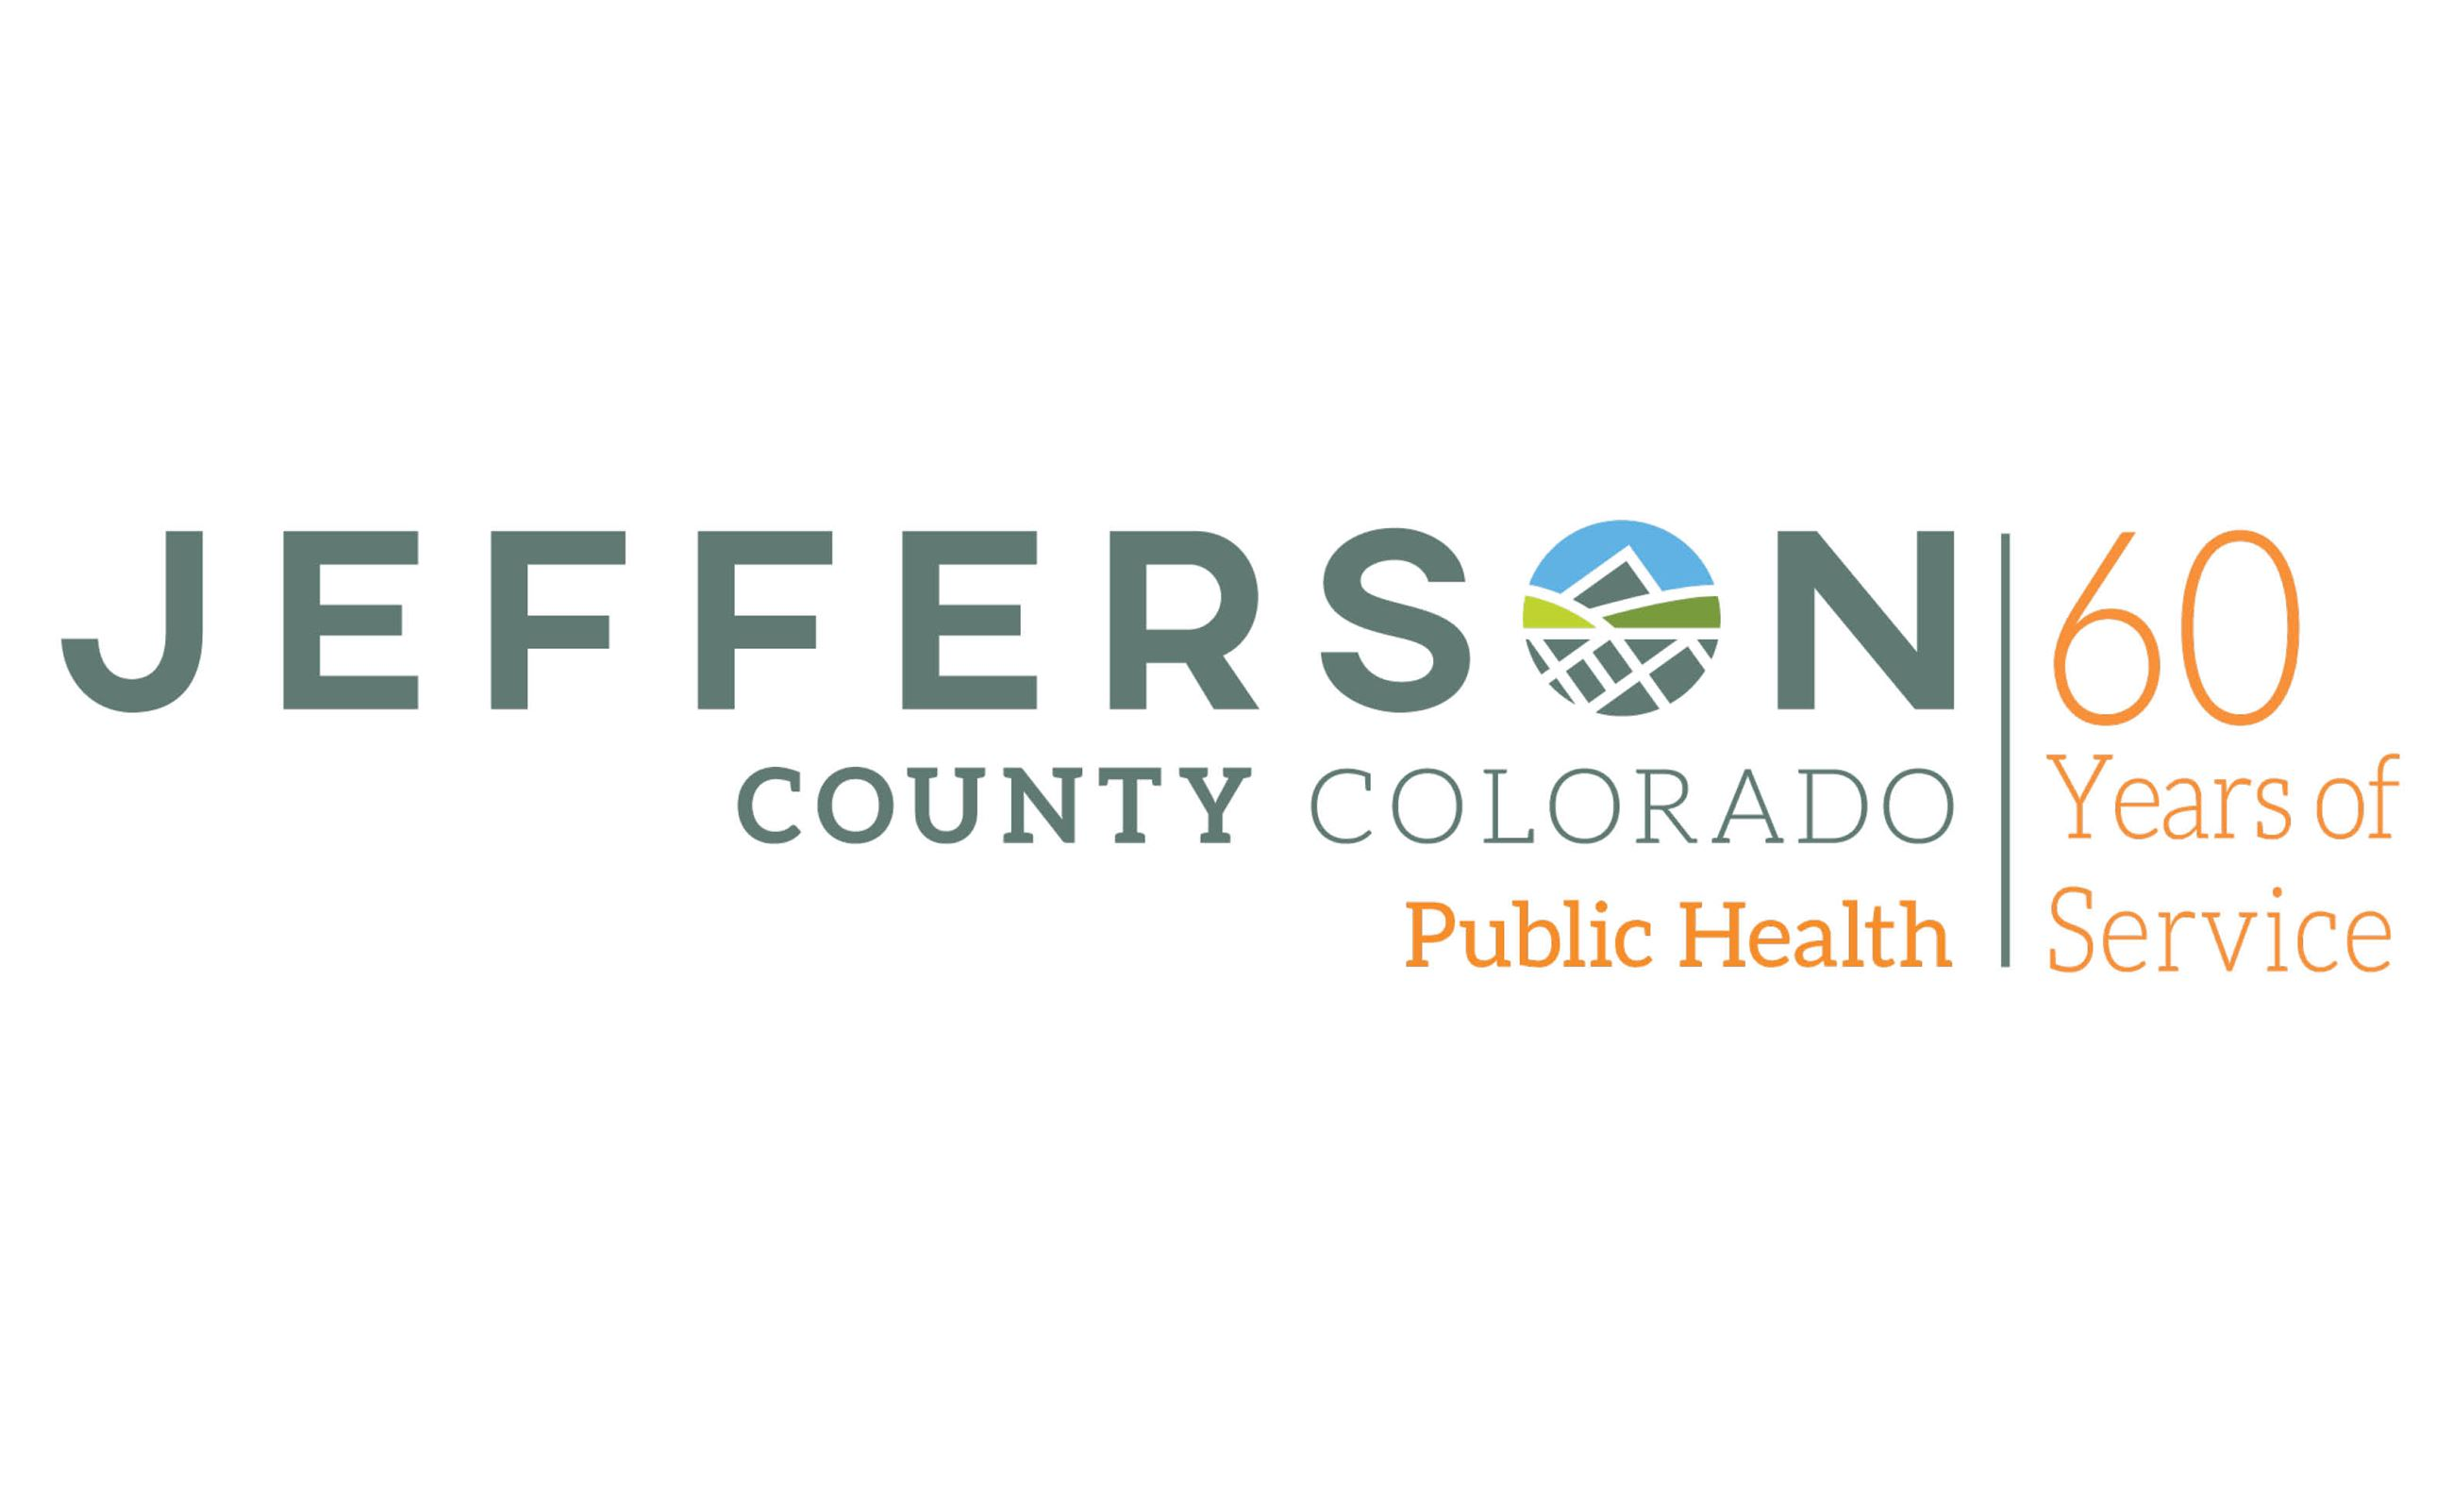 Jefferson County Public Health 60 Years of Service Logo